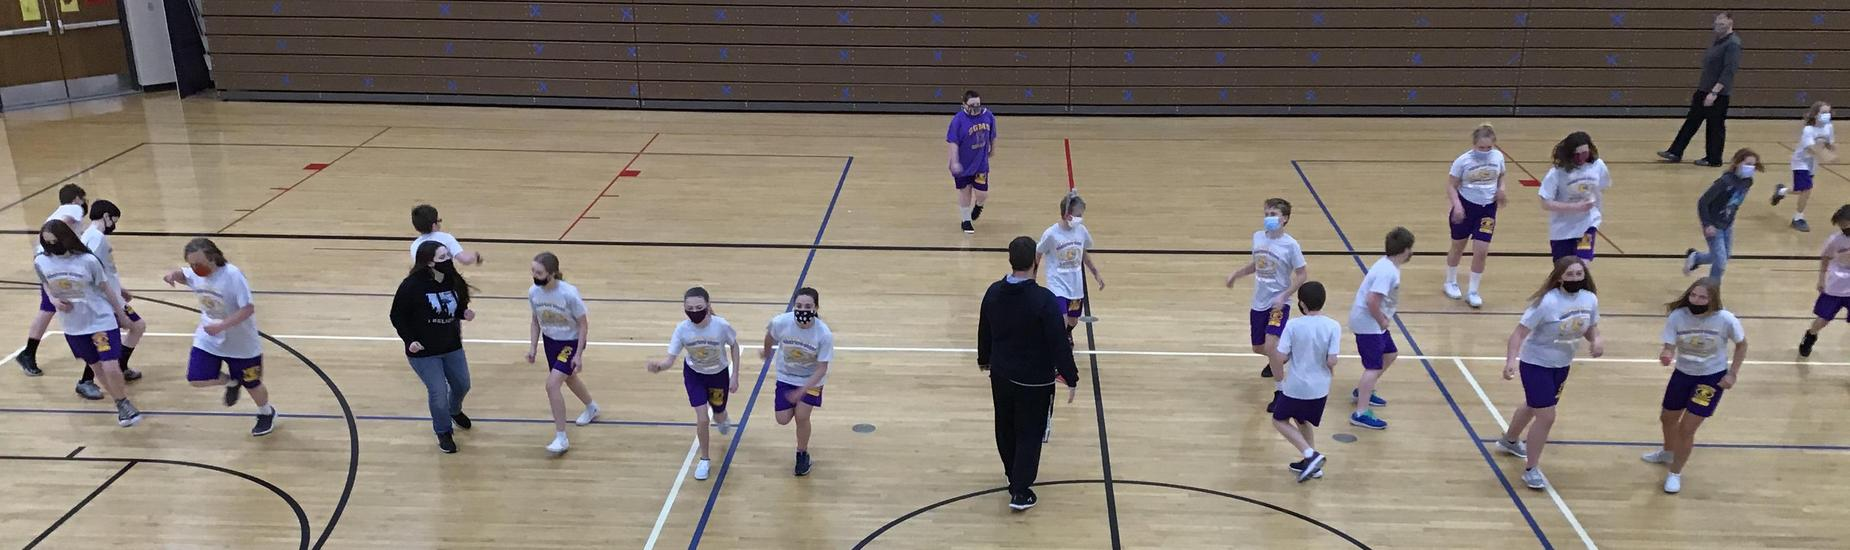 Middle school gym students running in the gym